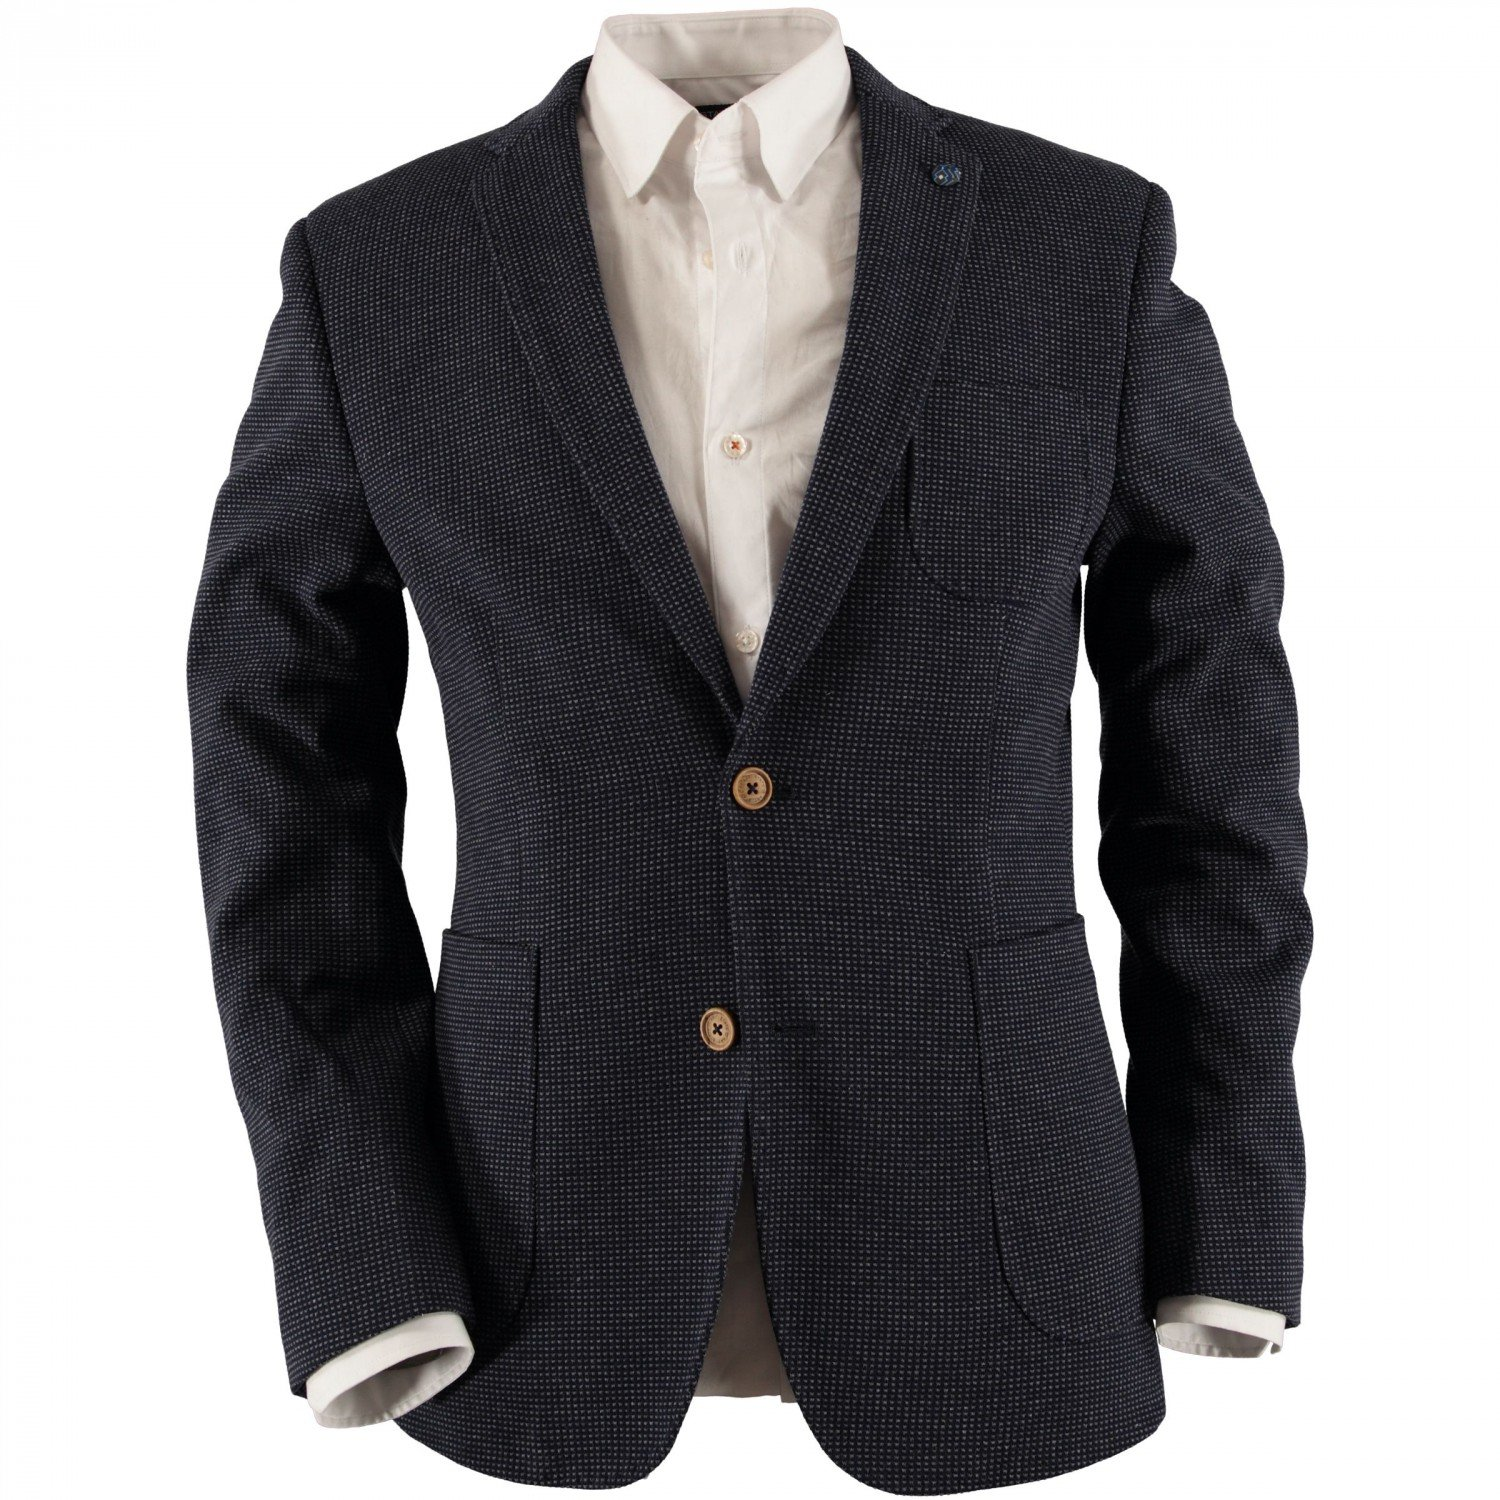 State of Art Blazer - Kariert - Tailored Fit - Jersey Jacquardstrick 15121/5895